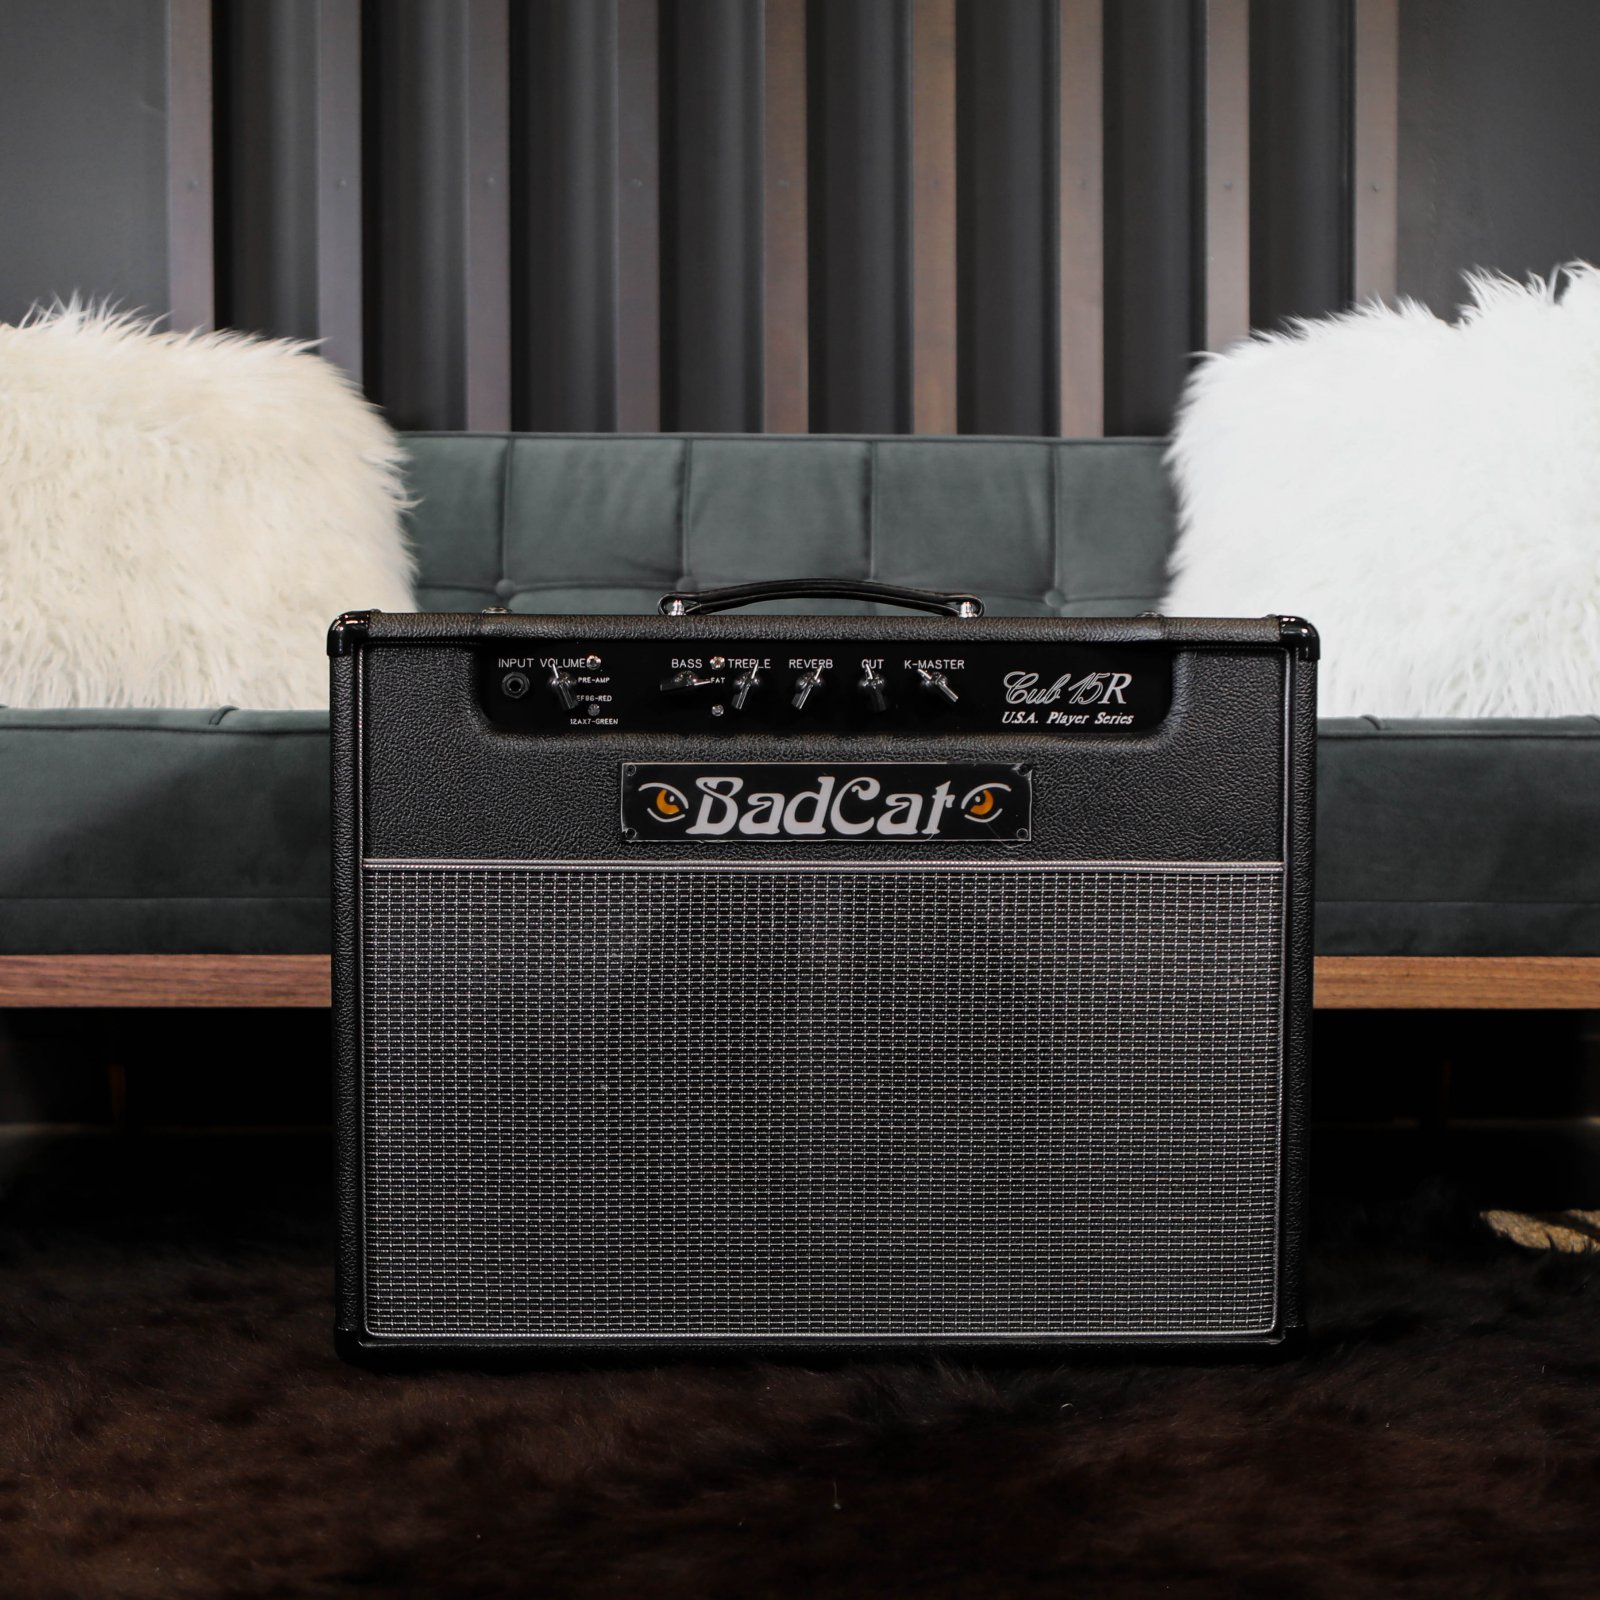 Bad Cat USA Player Series Cub 15R 15w 1x12 Combo Amplifier